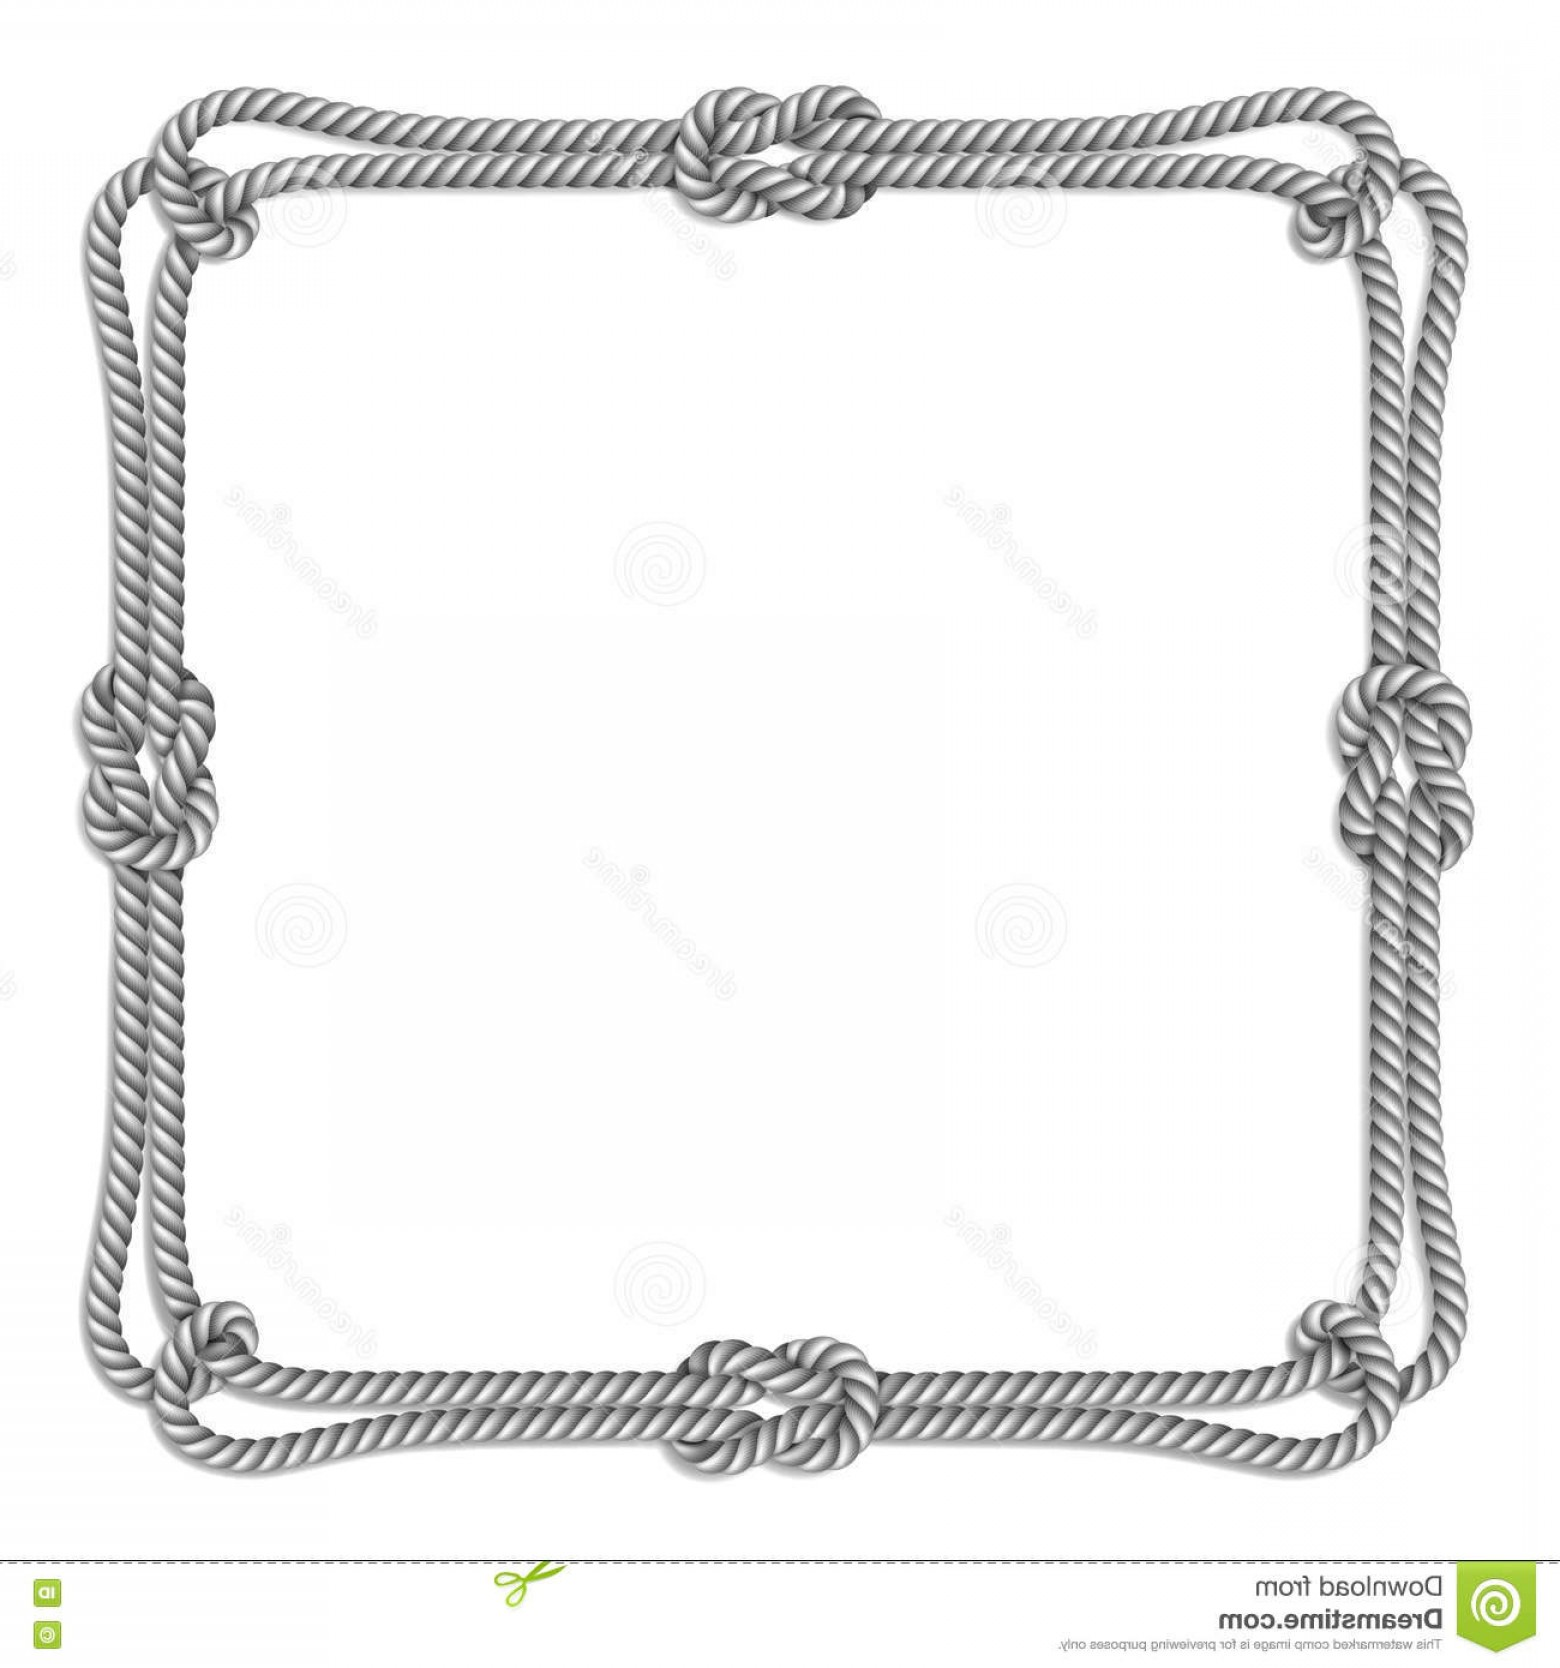 Square Black Vector Border Frame: Stock Illustration White Rope Woven Vector Border Rope Knots Square Vector Frame Isolated Image